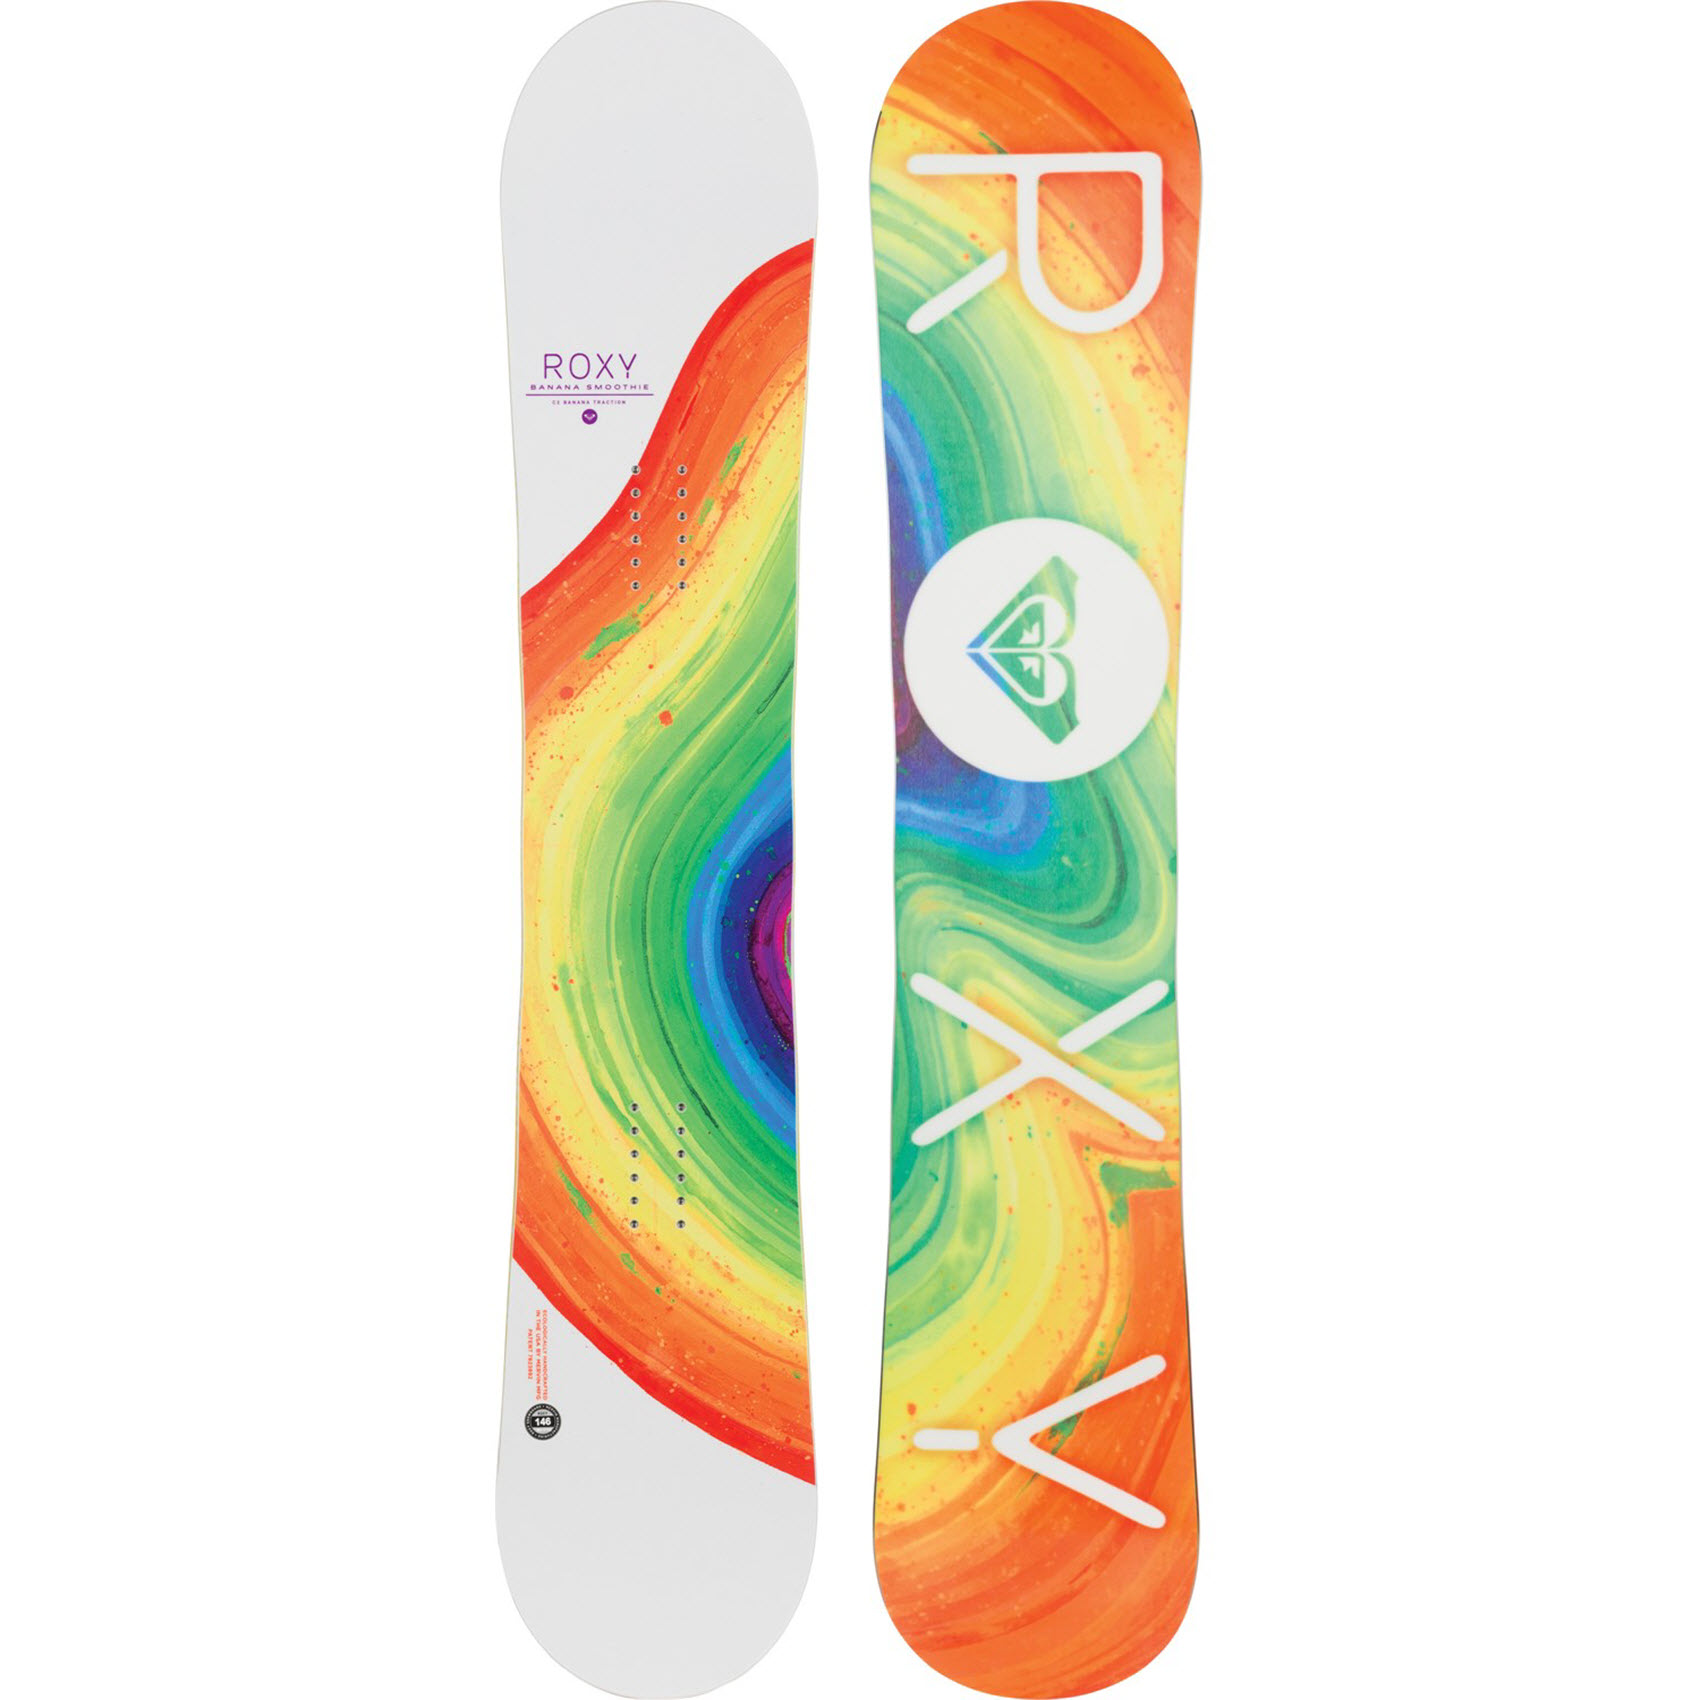 Roxy Banana Smoothie 2015 Womens Snowboard